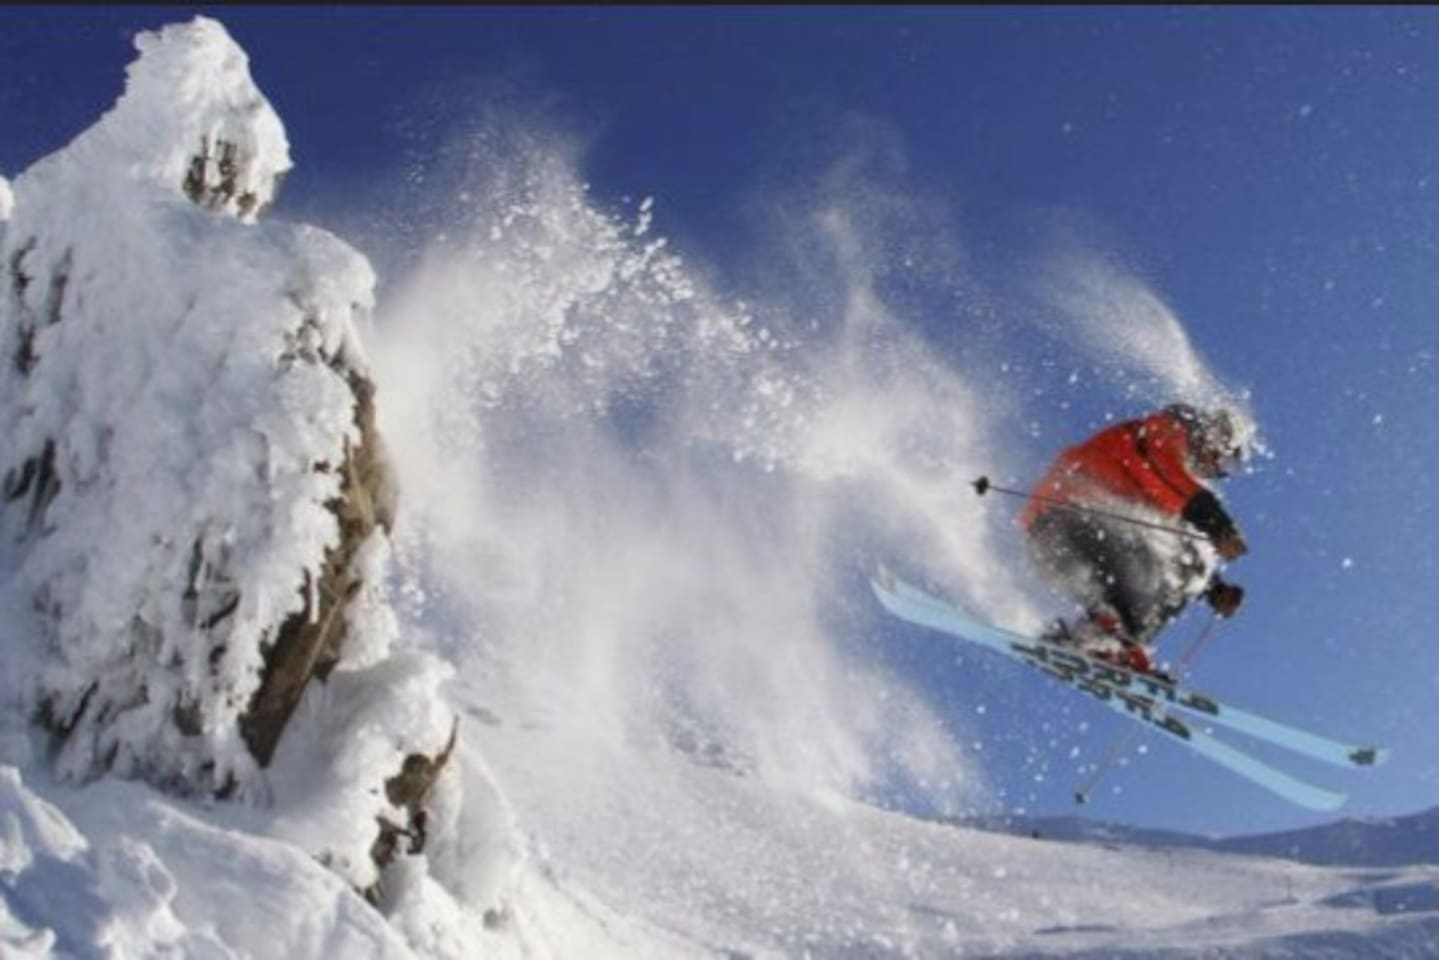 Indian Peaks Resort is truly nestled in the pines, within minutes of world-class skiing at Winter Park Resort!